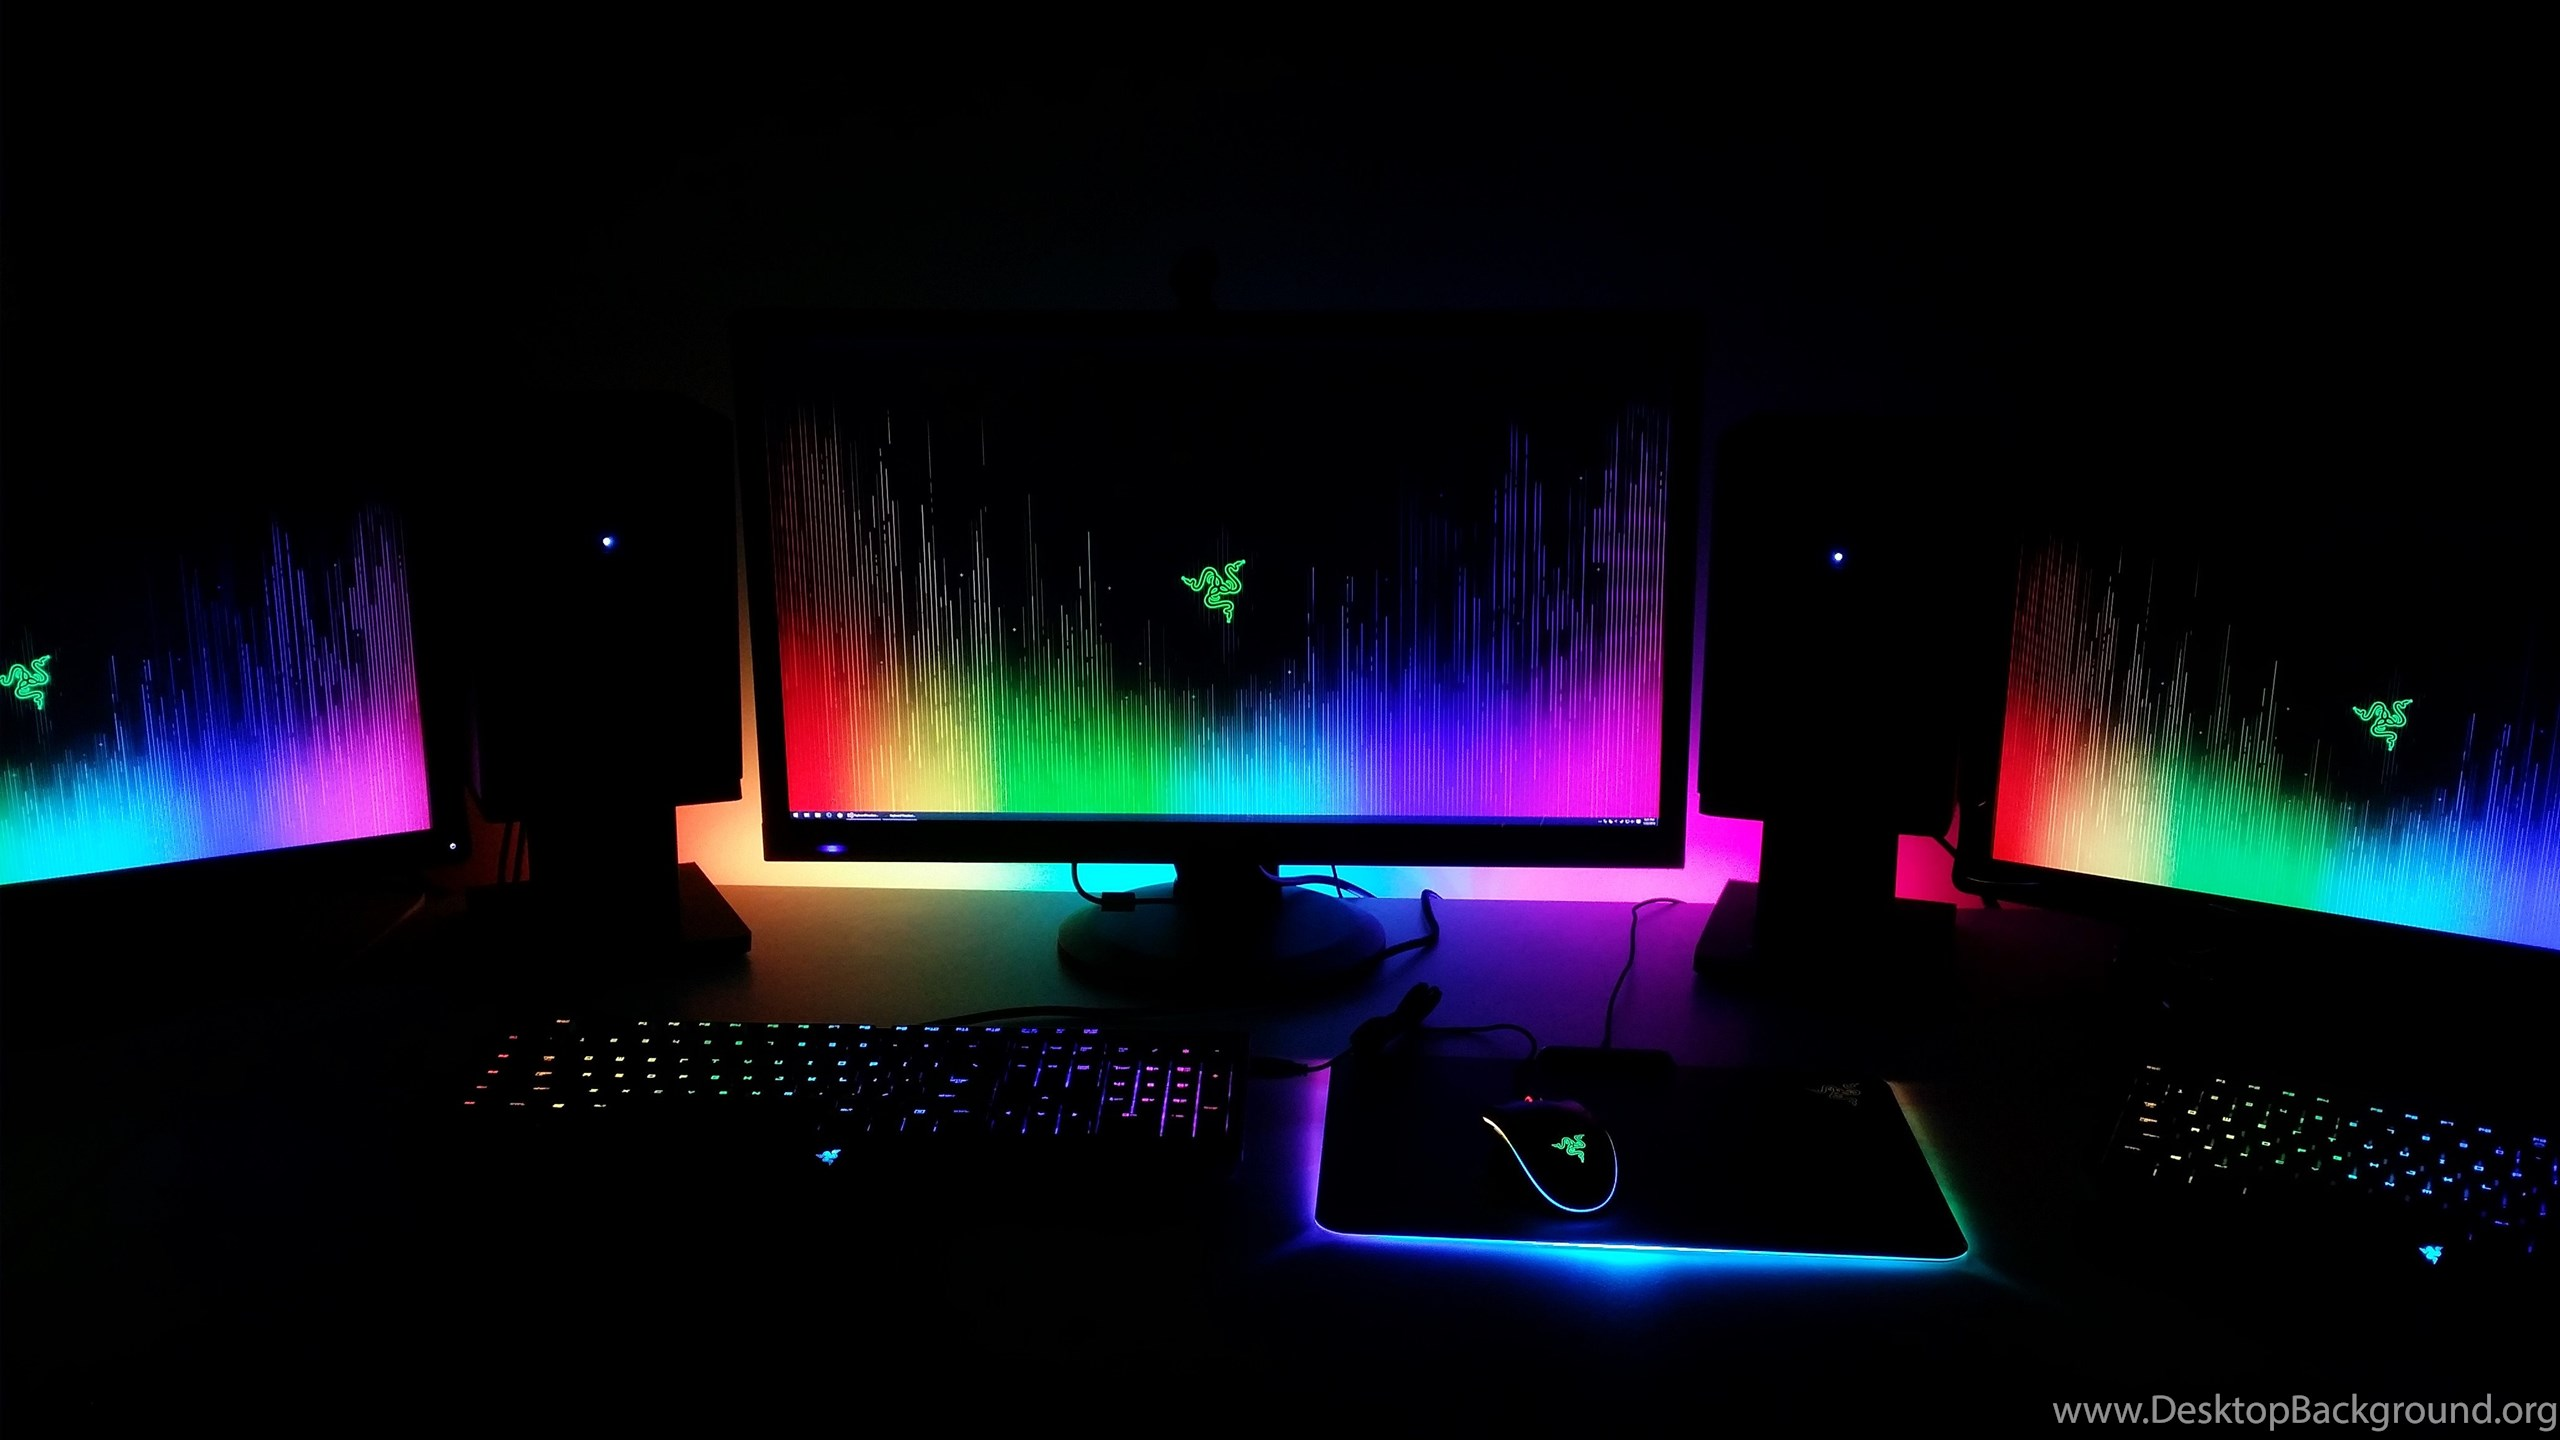 Here S My Chroma Setup To Go Along With The New Wallpaper